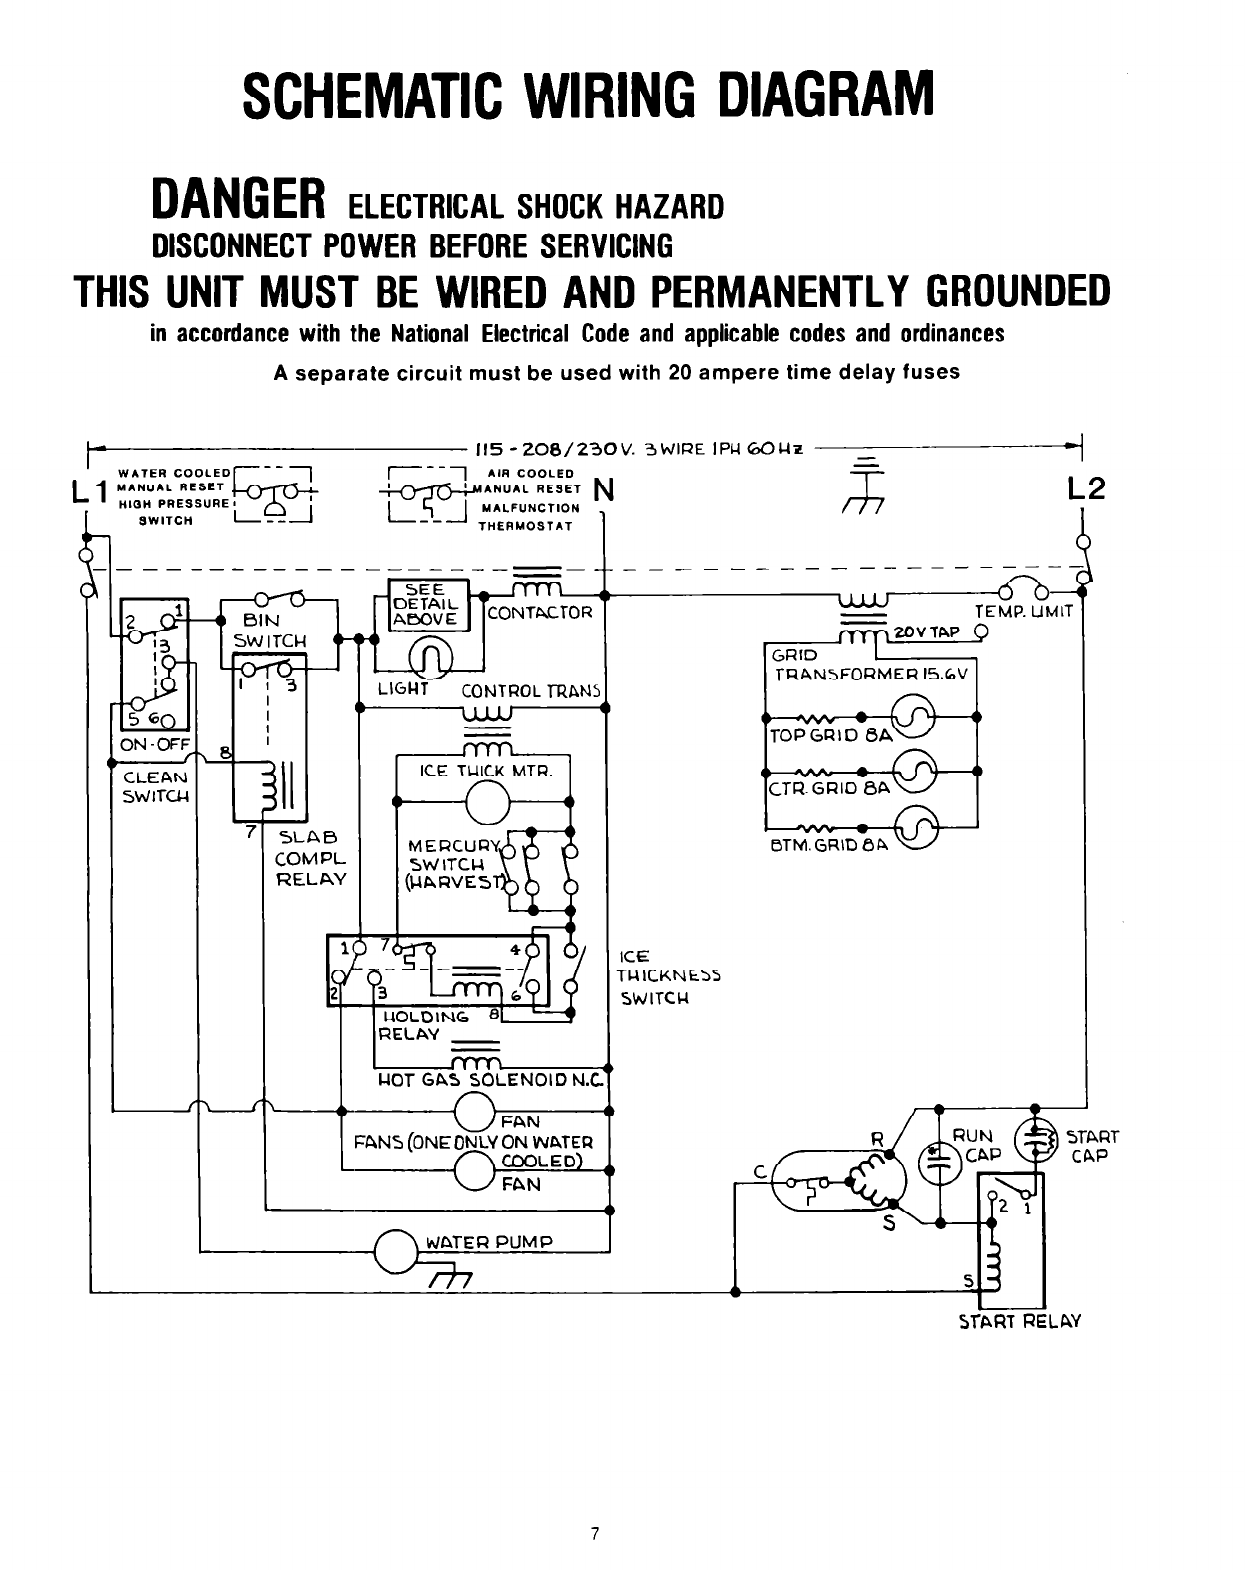 3616883c 28de 484d a98e f66647d6fb0d bg7?resize=840%2C1059 frigidaire refrigerator ice maker wiring diagram wiringdiagrams frigidaire refrigerator ice maker wiring diagram at gsmportal.co